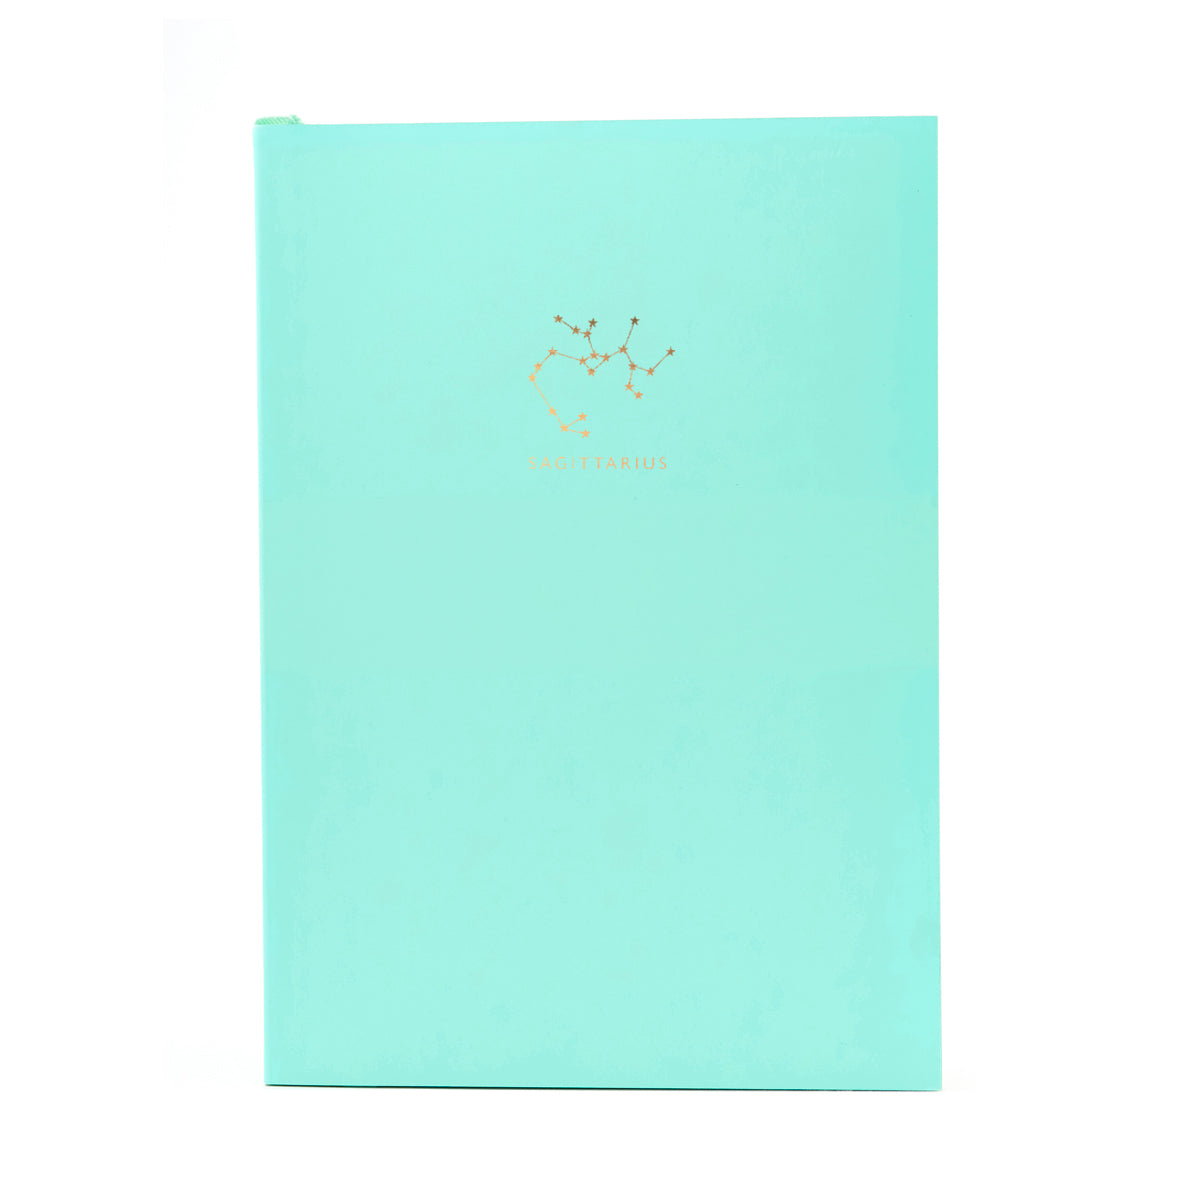 ZODIAC CONSTELLATION A5 Notebook - Sagittarius